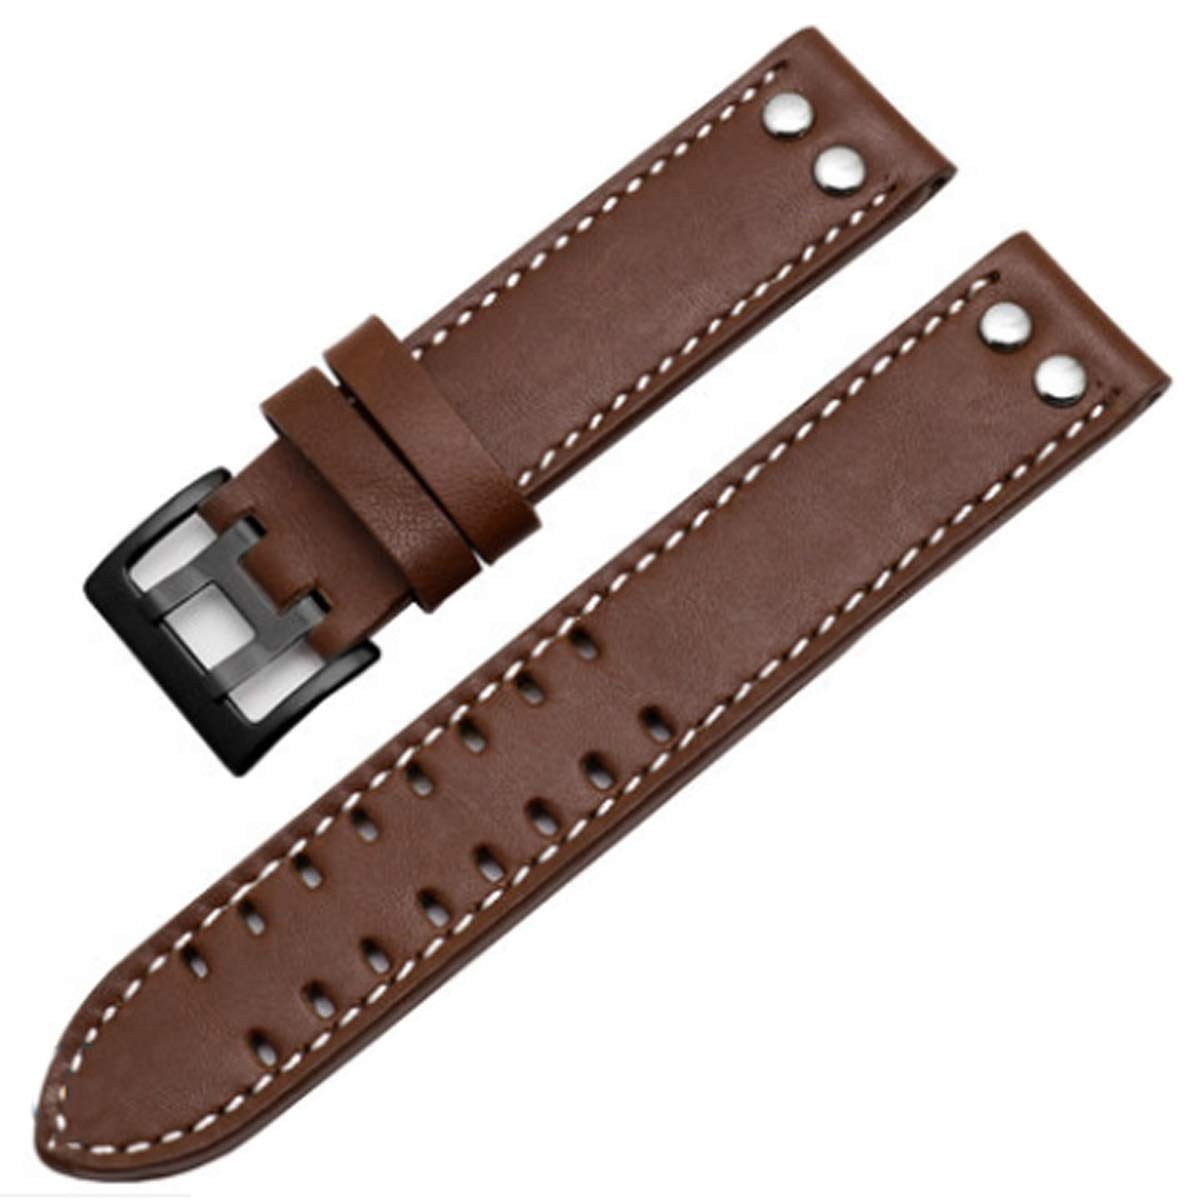 20mm / 22mm Leather Watch Band Strap Fits for Hamilton Khaki Field Aviation H70595593 (22mm, Smooth Brown(Black Buckle))